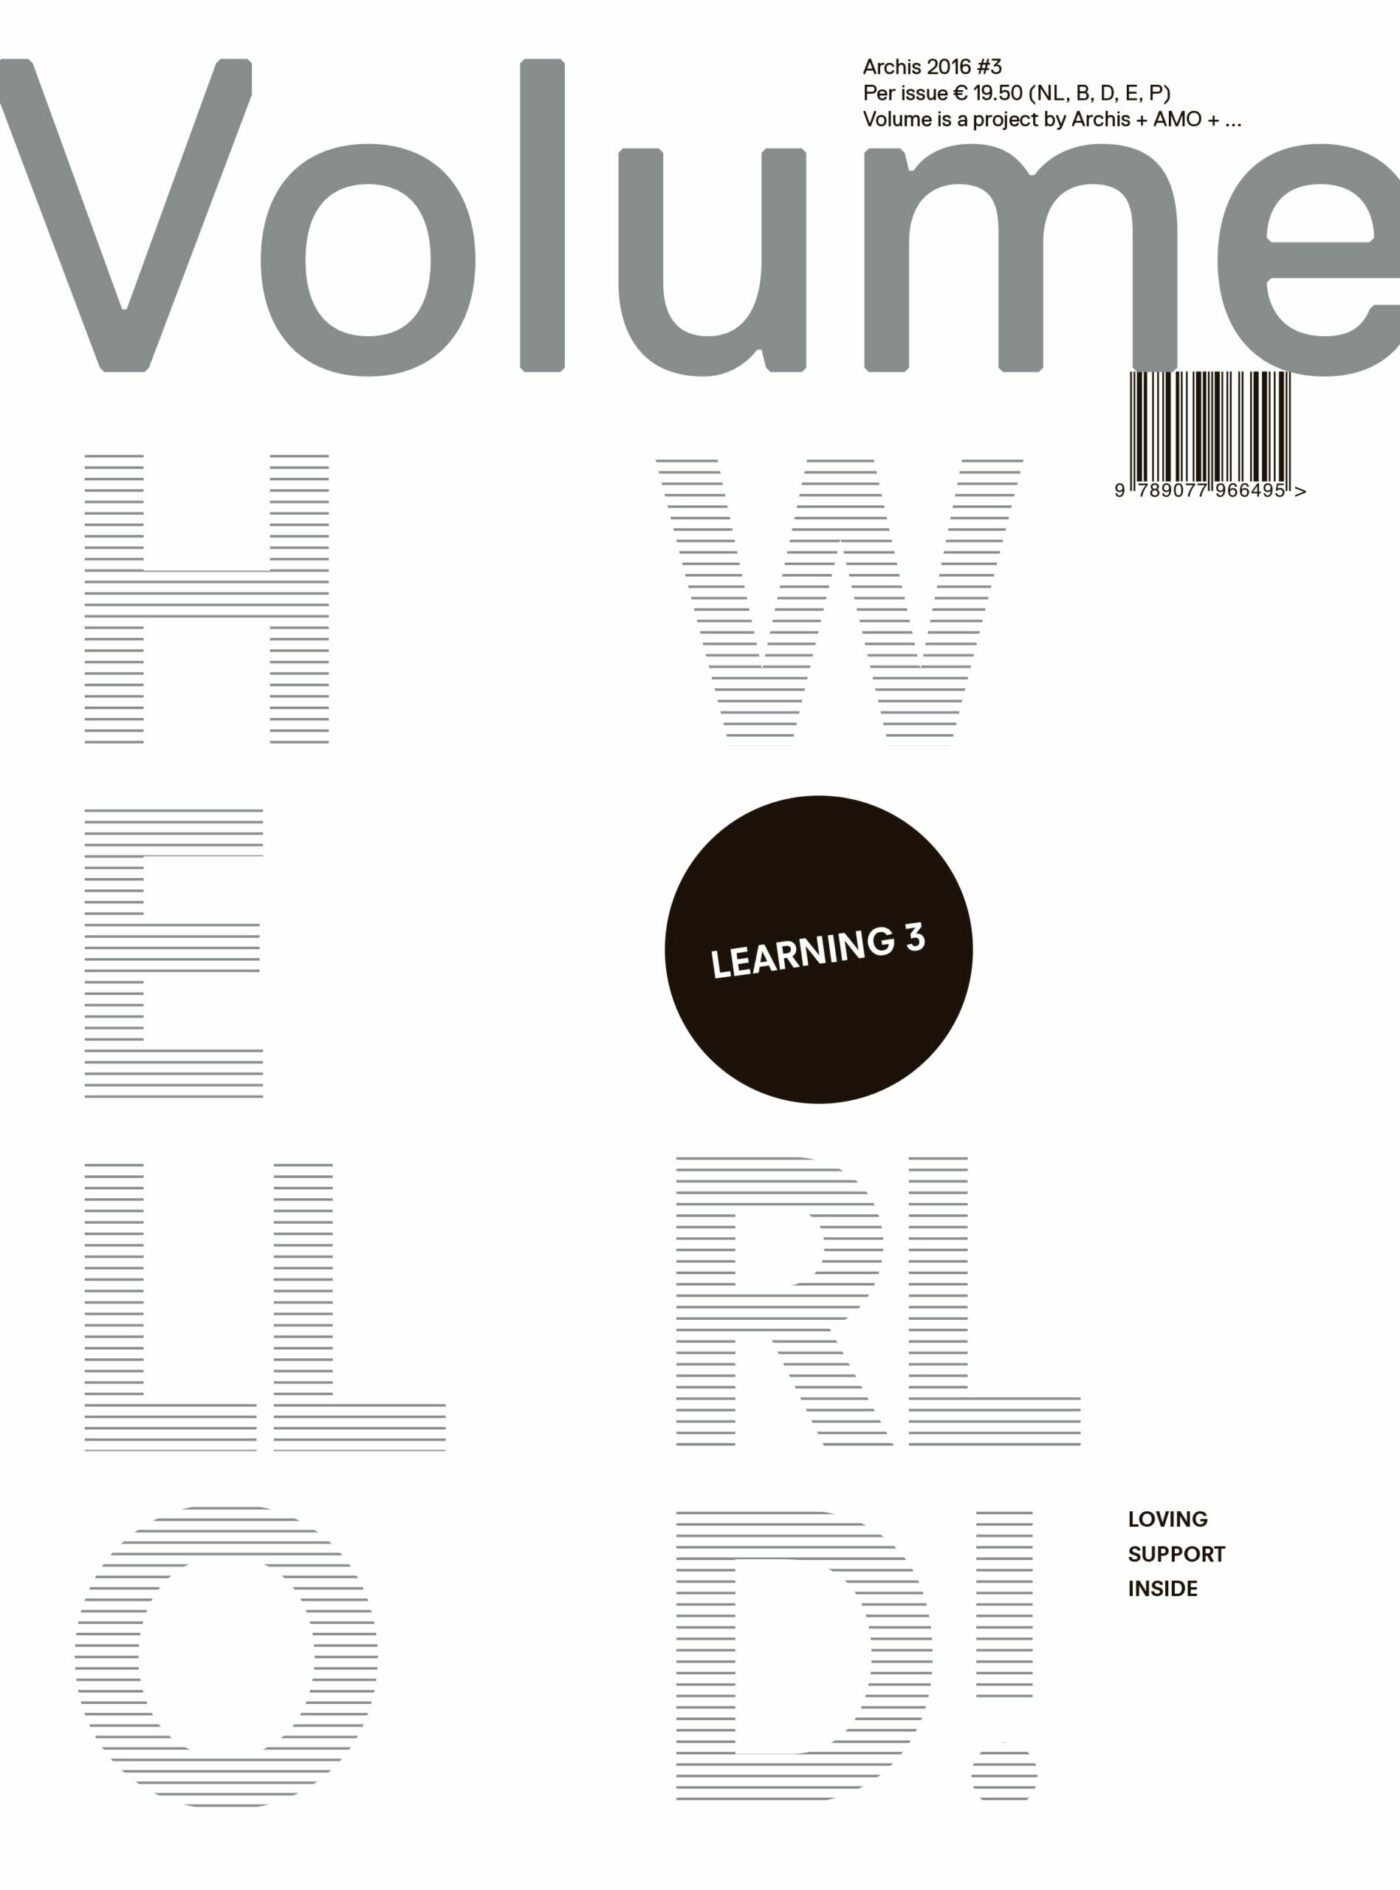 Out Now: Volume #49